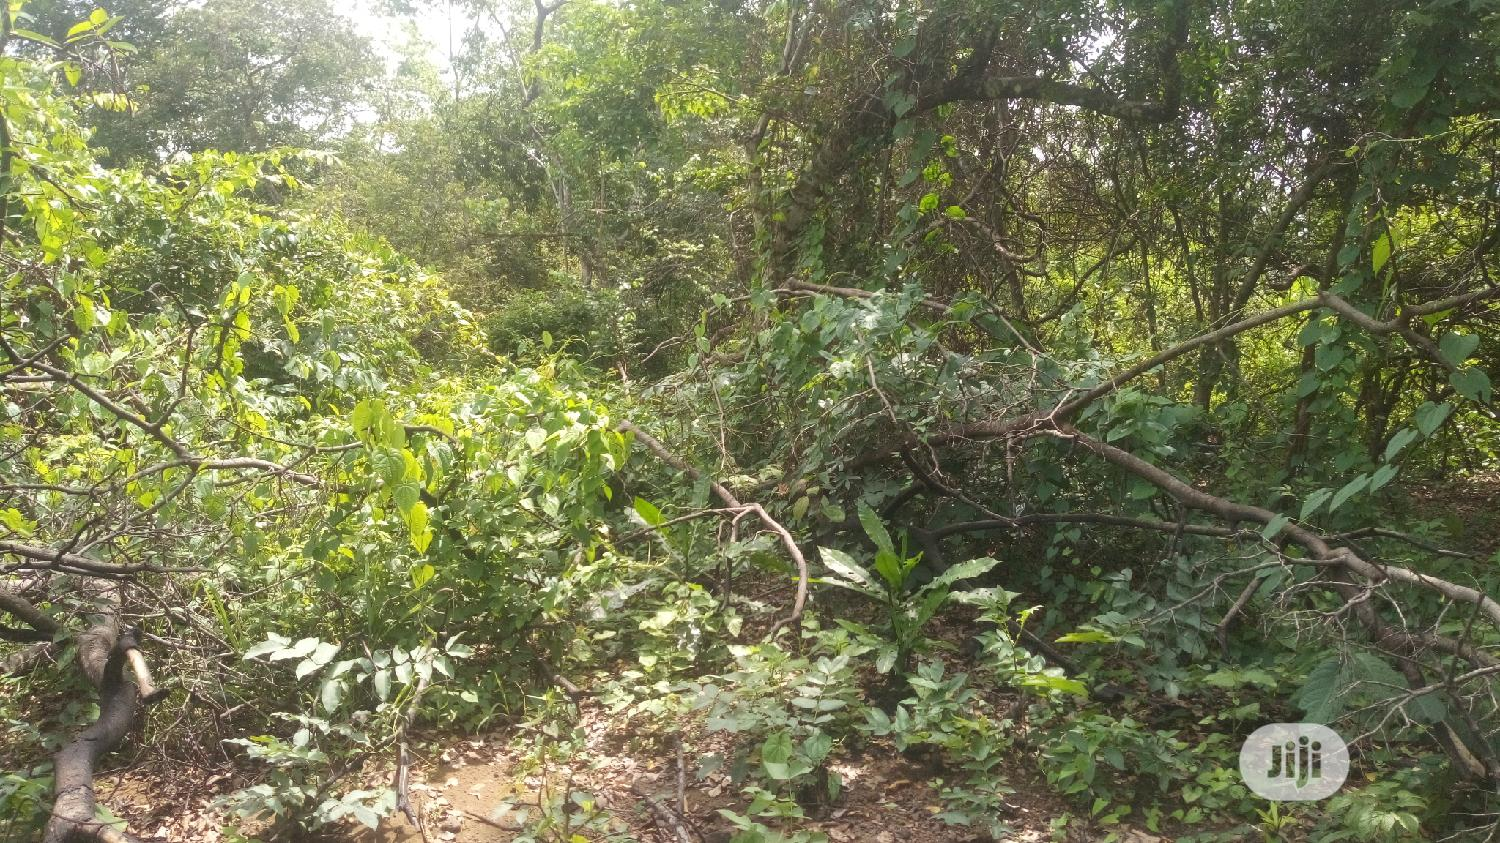 At UFUMA 30 Plots of Land for Sale Melekh Olam Consultium